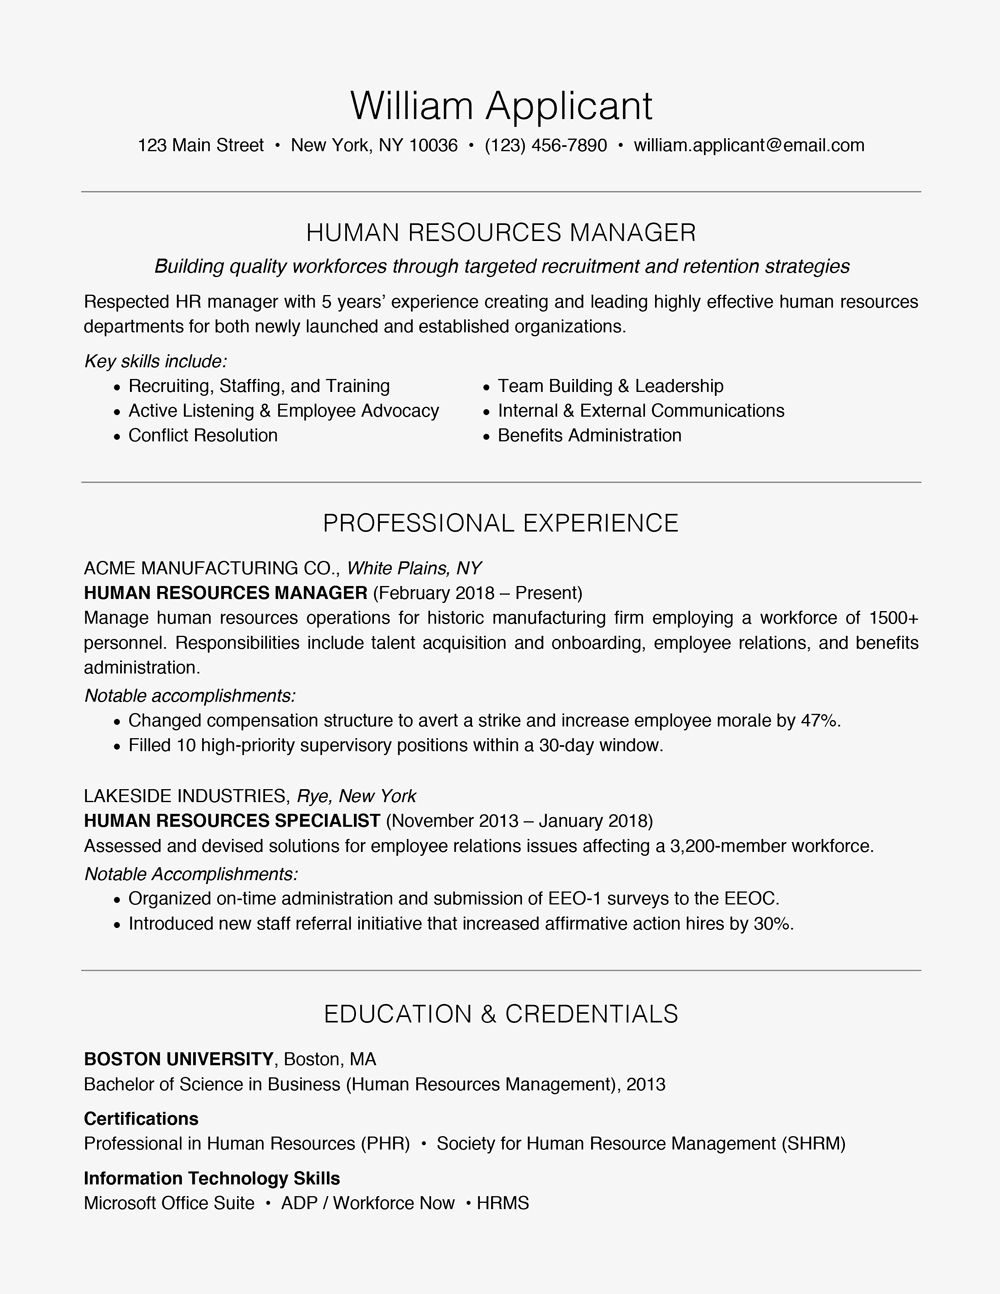 Direct Care Professional Job Duties - General Skills for Resumes Cover Letters and Interviews